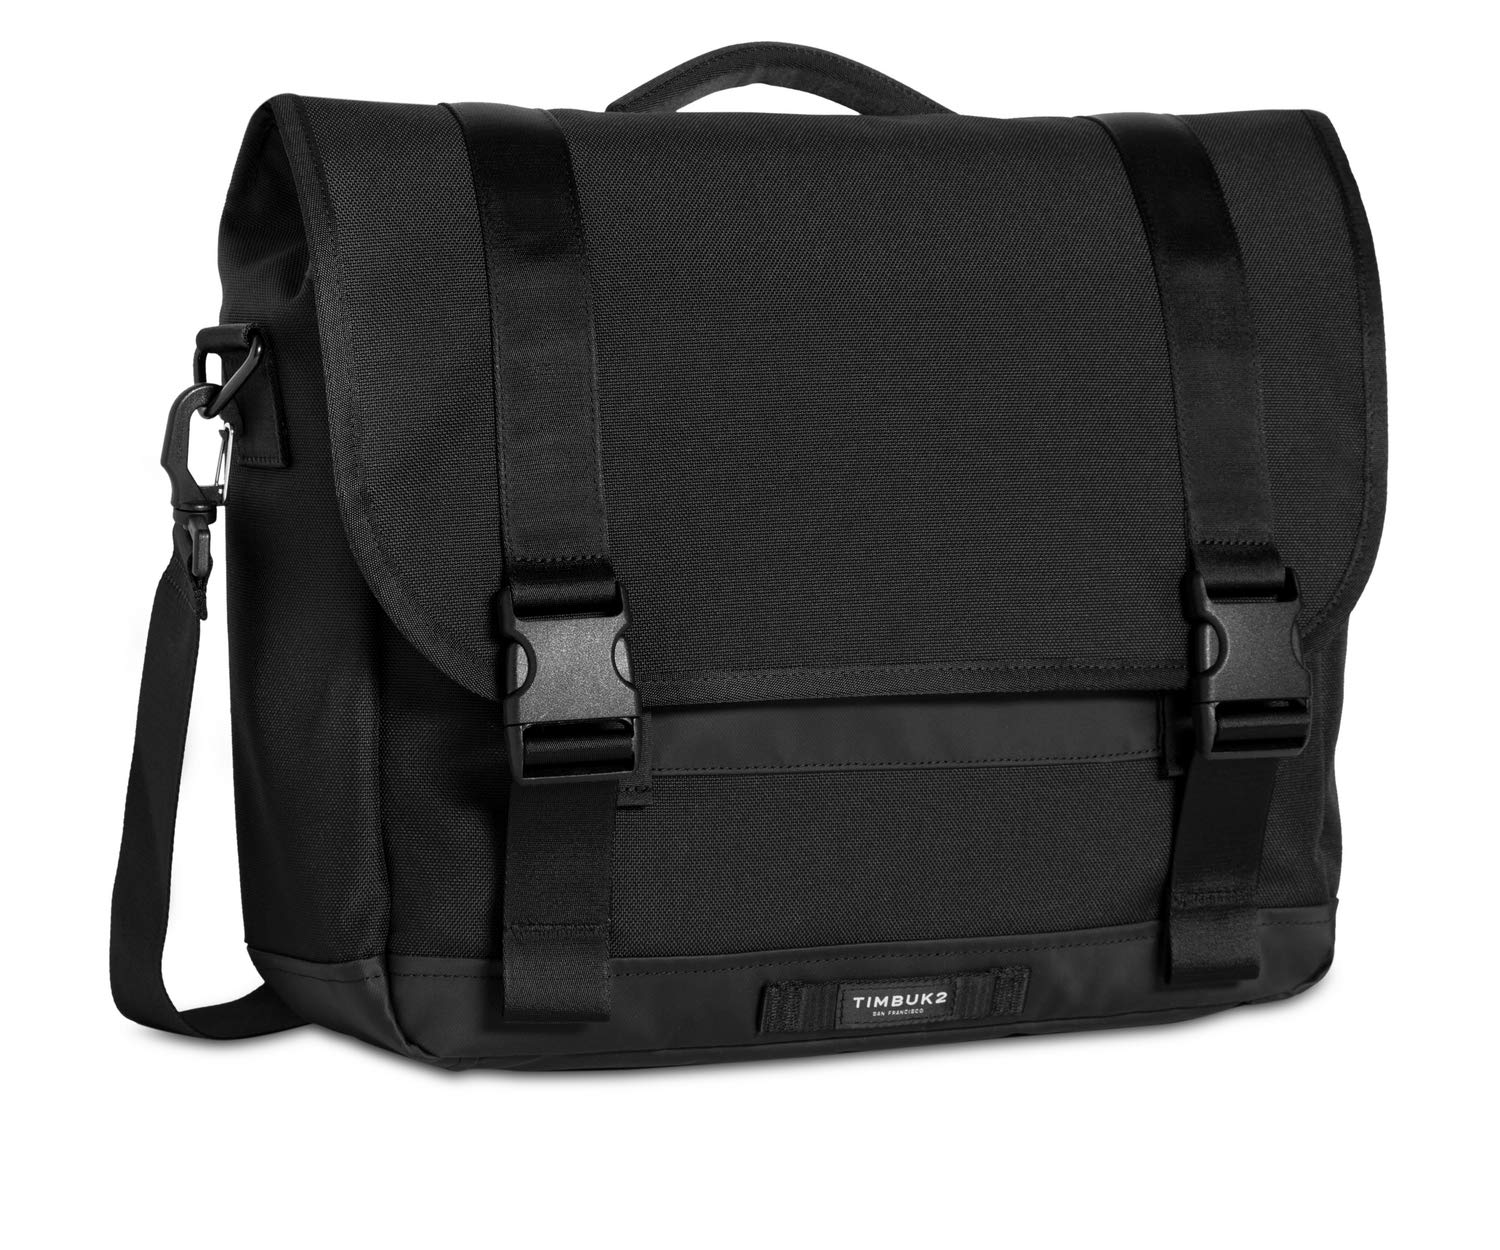 Timbuk2 Commute Messenger Bag 2.0, Jet Black, Medium